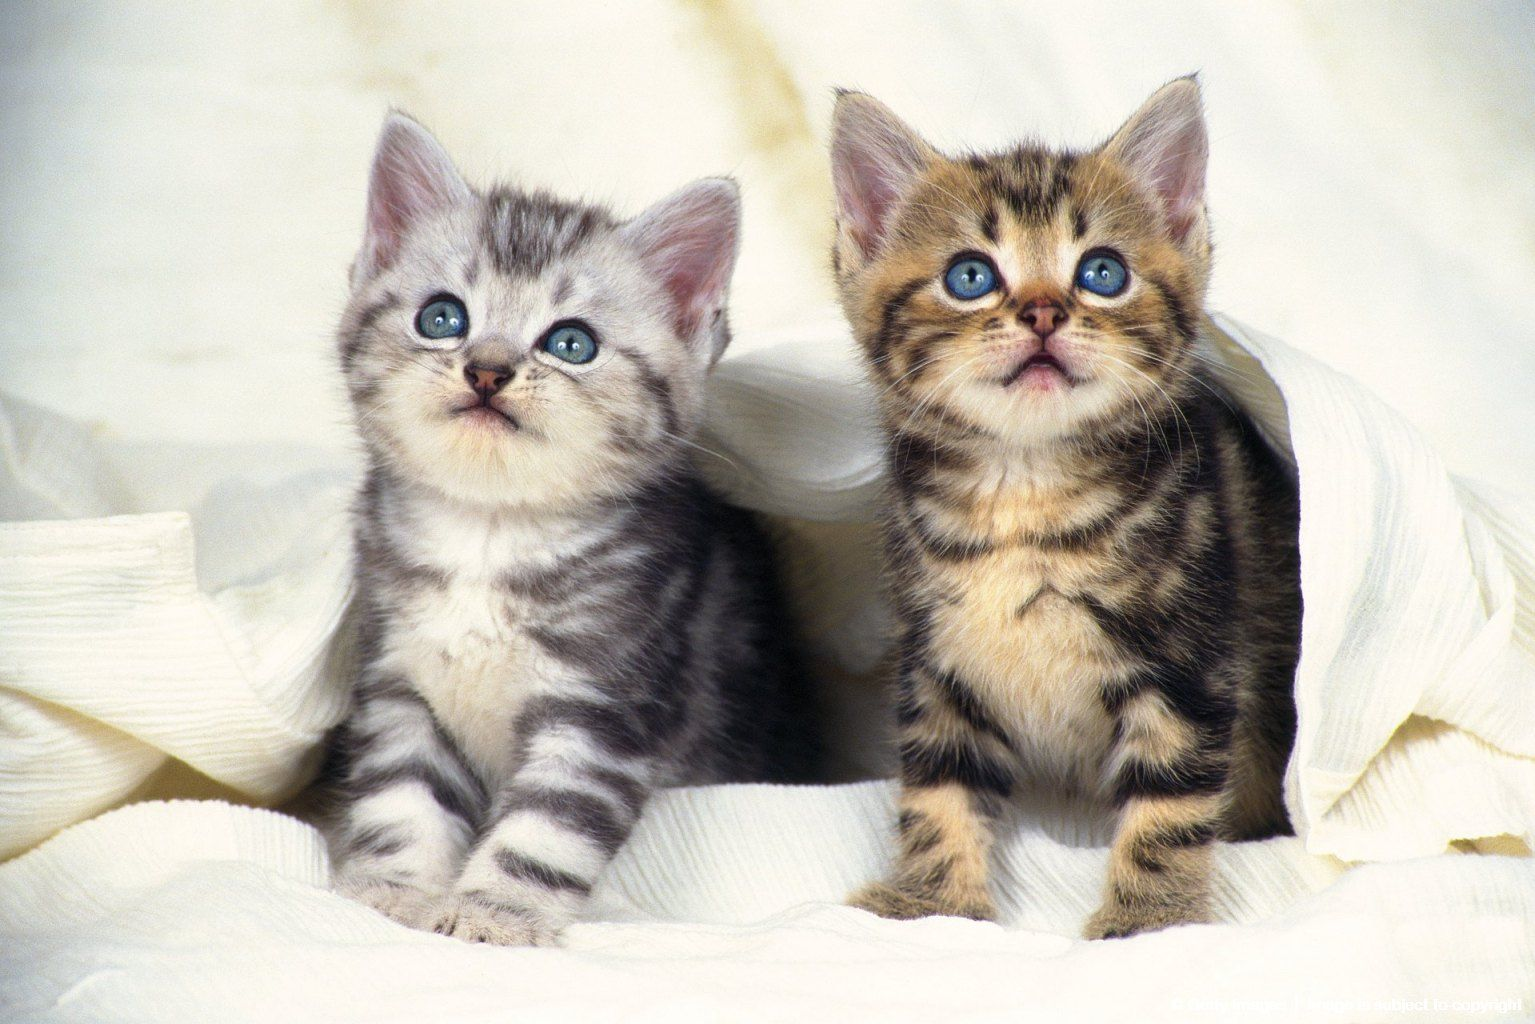 Two American Shorthair Kittens Covered In A White Blanket Looking Up Front View American Shorthair Kitten Kittens American Shorthair